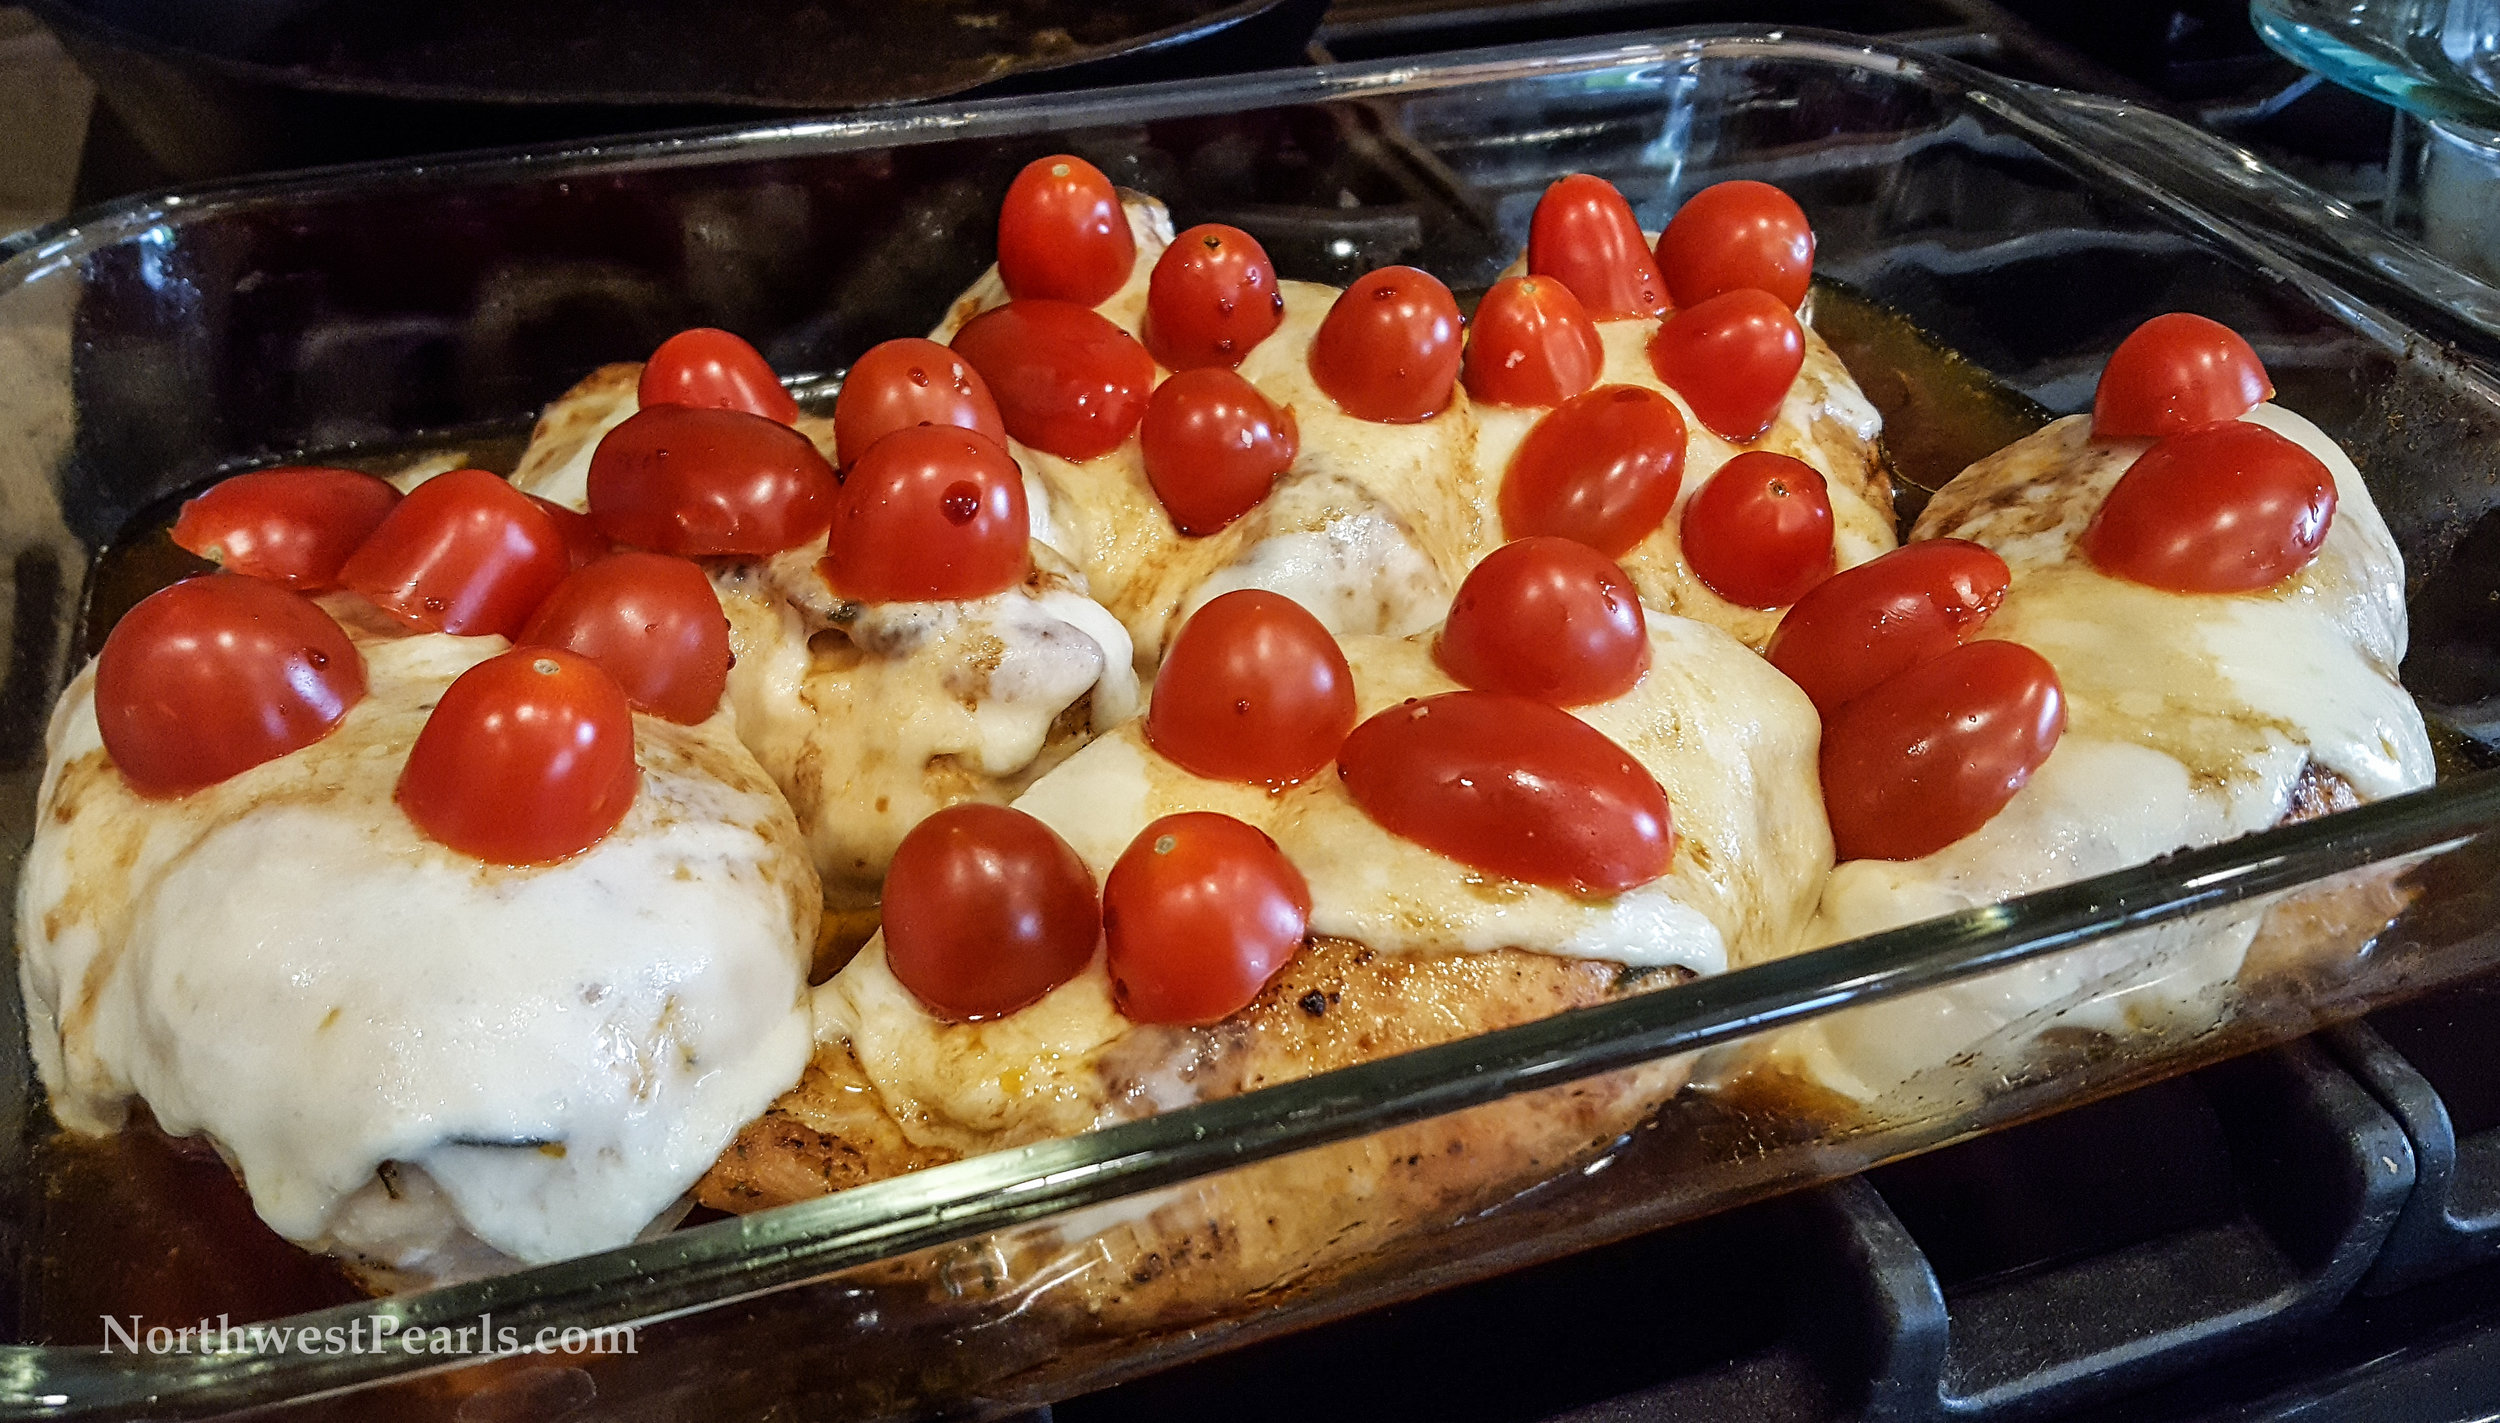 Northwest Pearls: Chicken Caprese